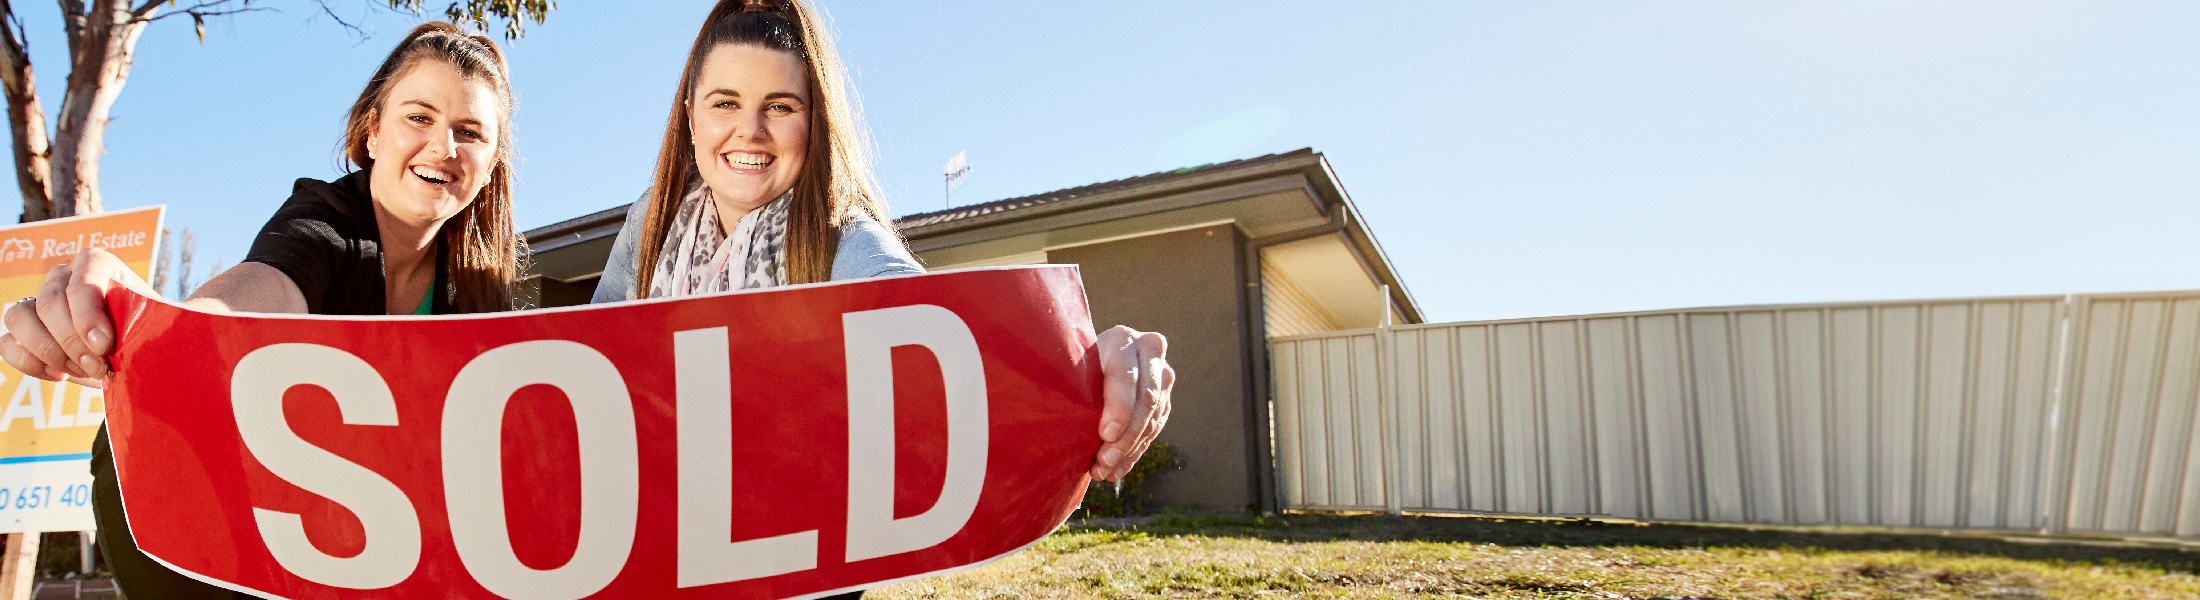 How to buy an investment property like Belinda & Katie - Greater Bank